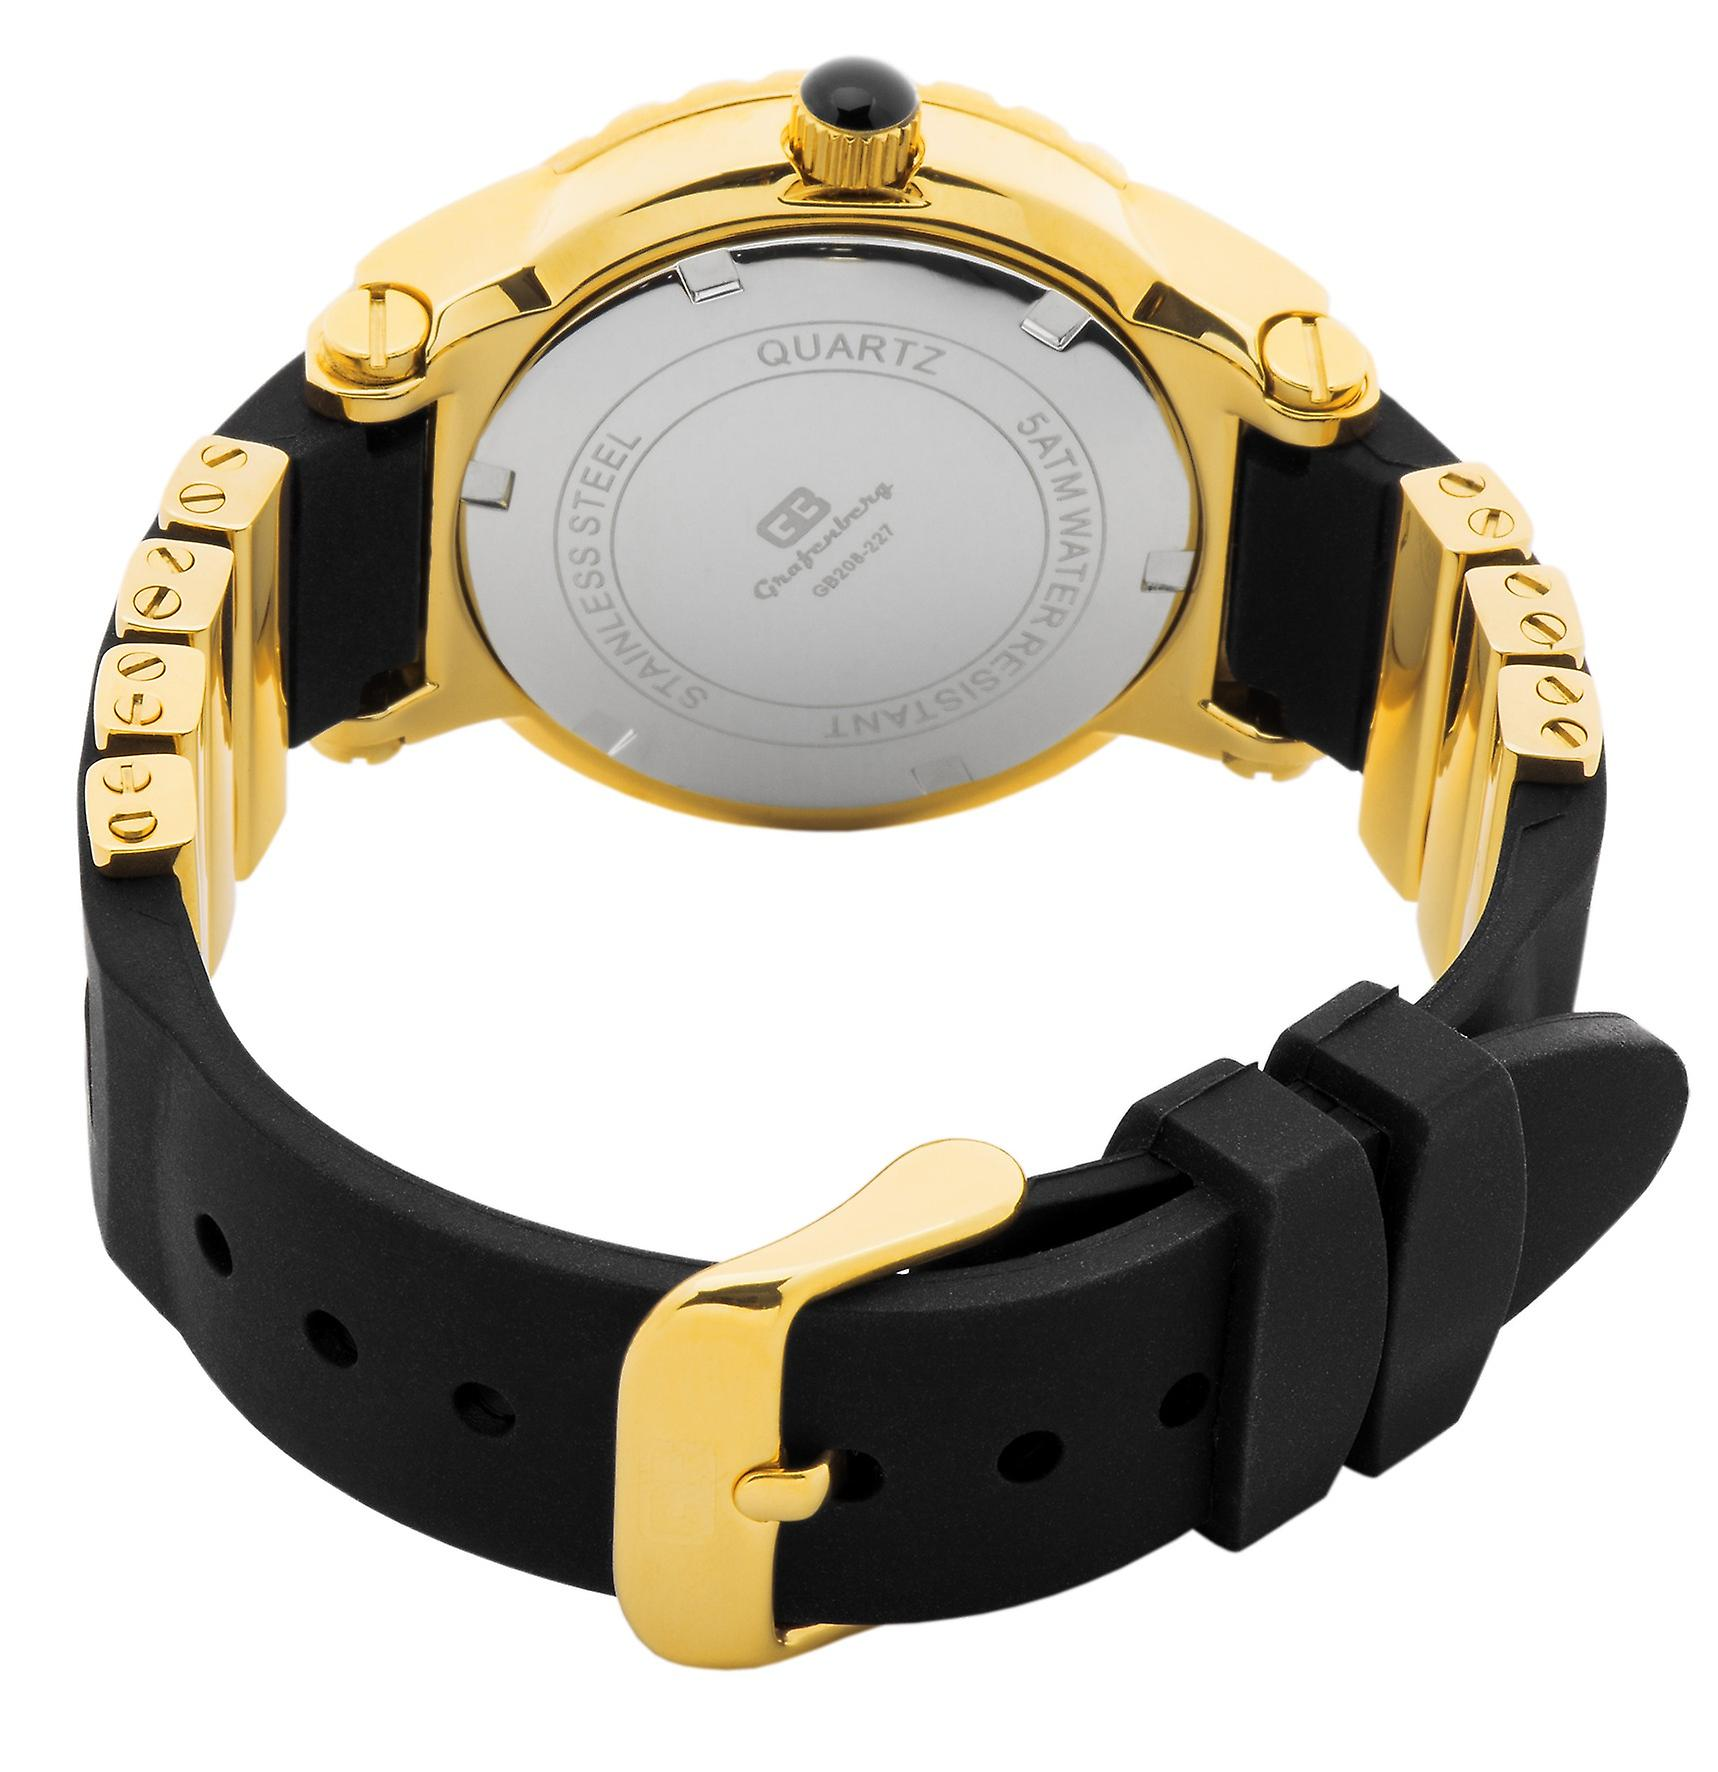 Grafenberg ladies watch, GB208-227